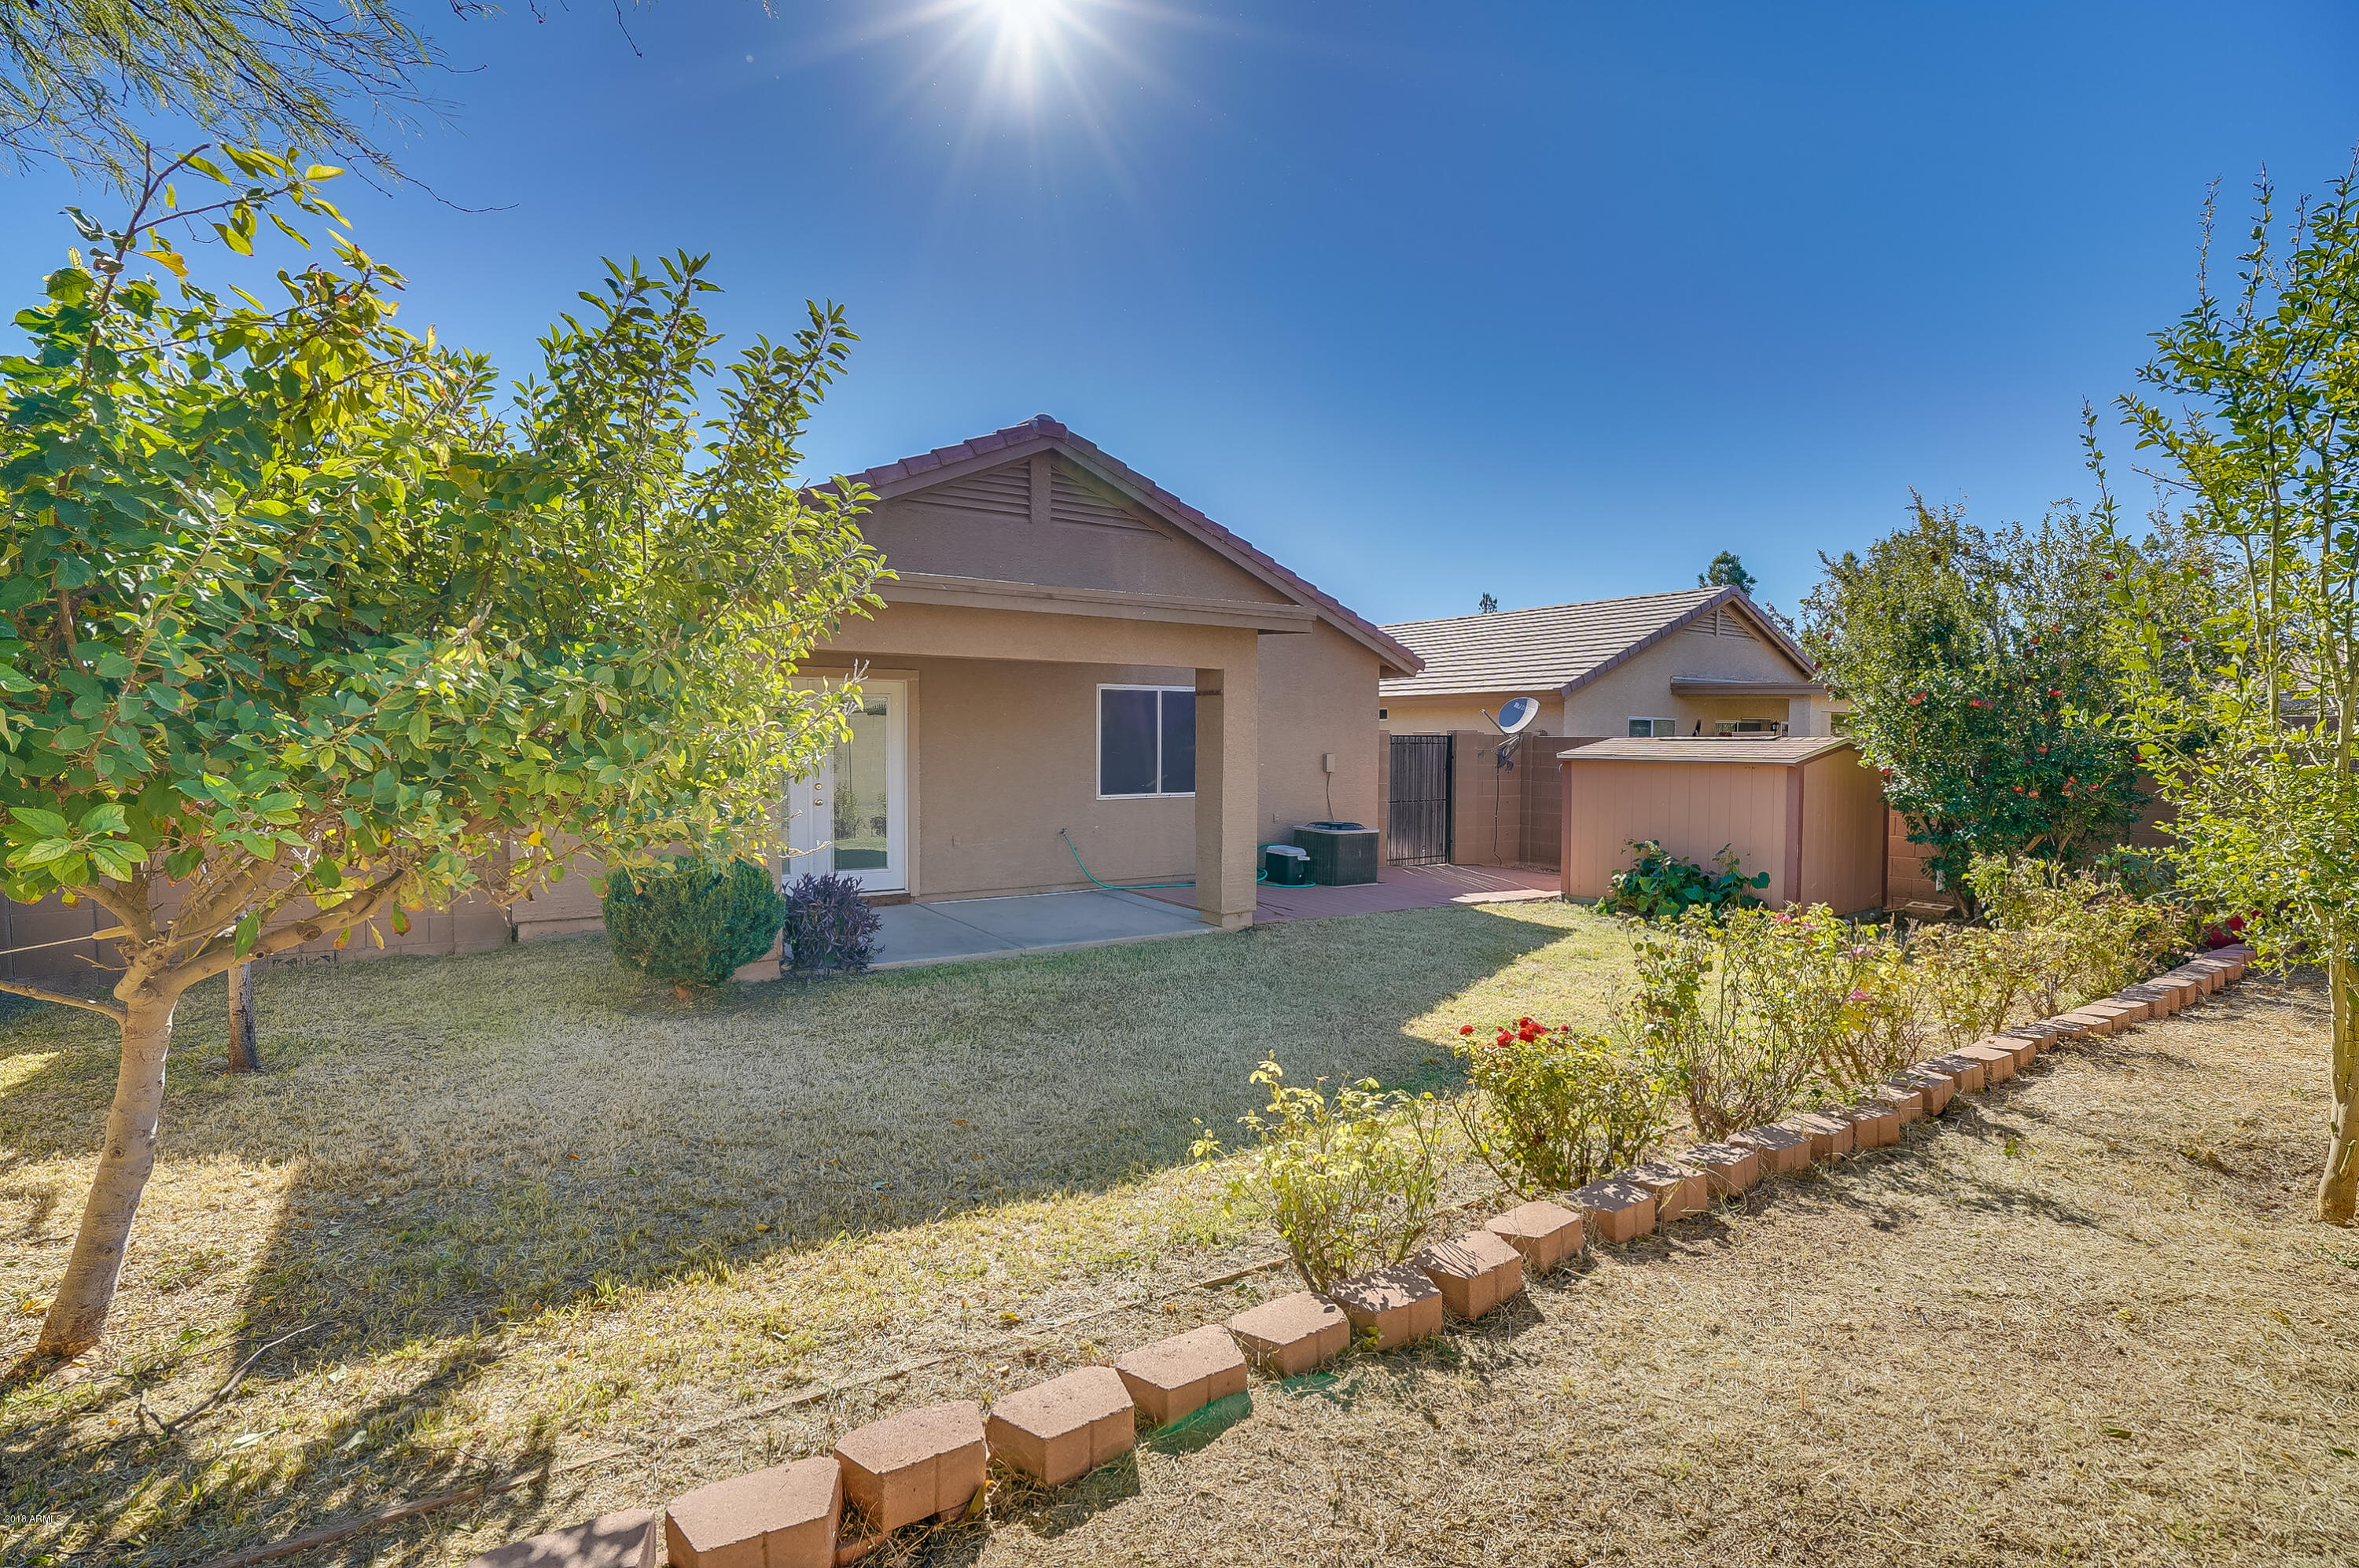 MLS 5842616 1726 W HARDING Avenue, Coolidge, AZ 85128 Coolidge AZ Three Bedroom